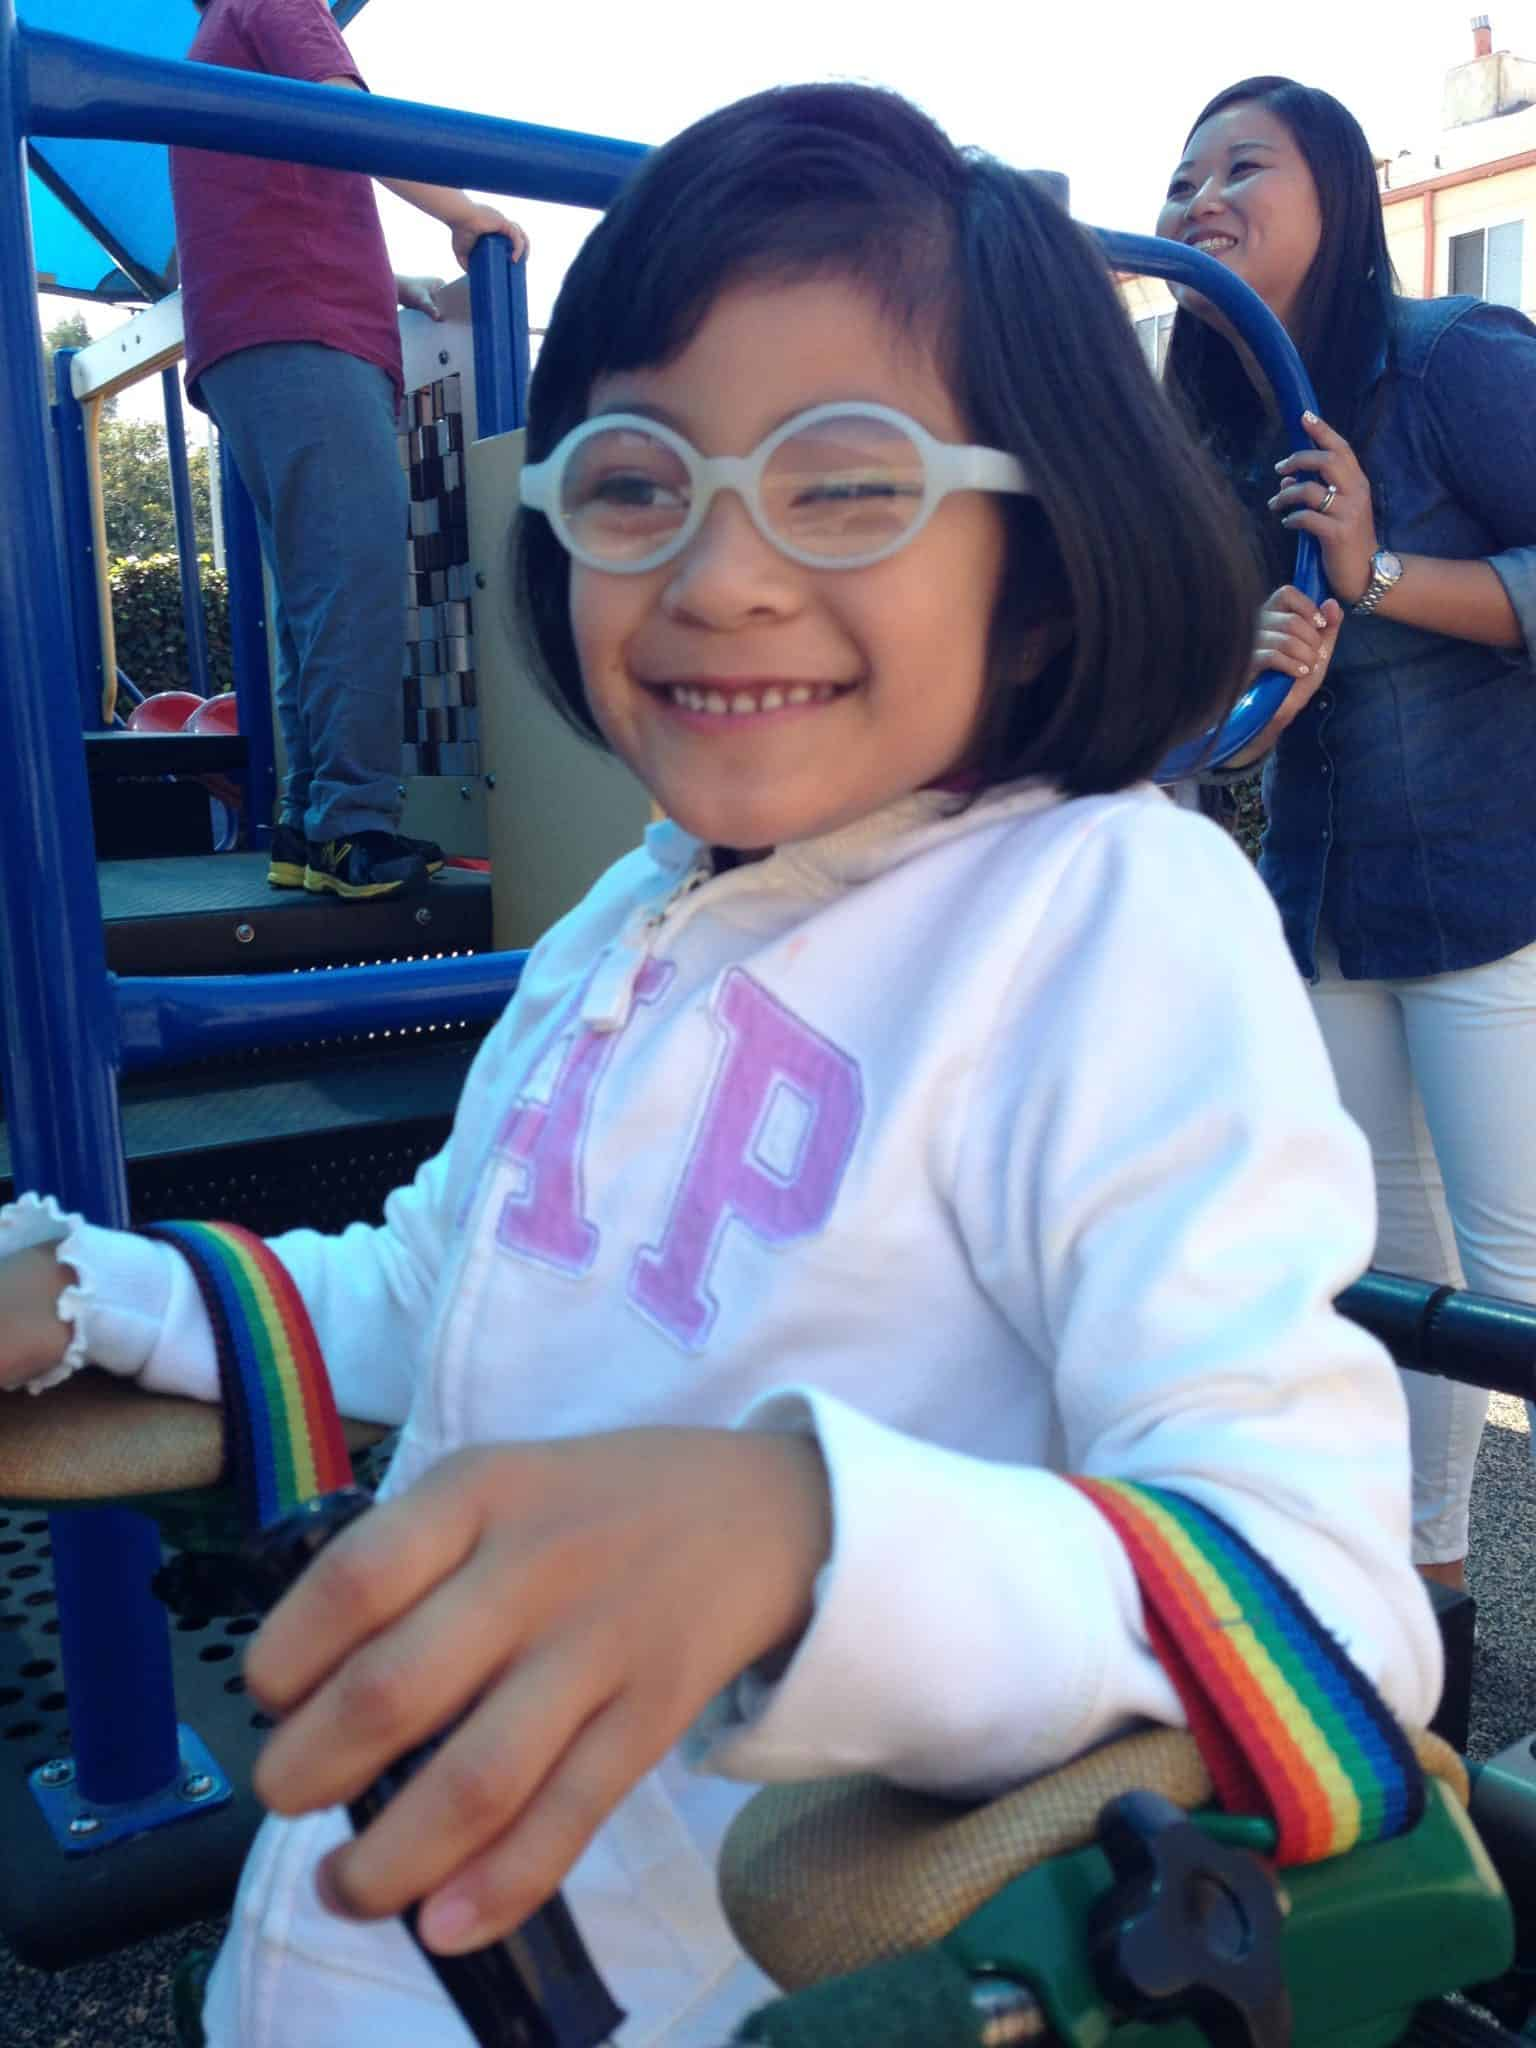 A young girl with glasses and a walker smiles on the playground